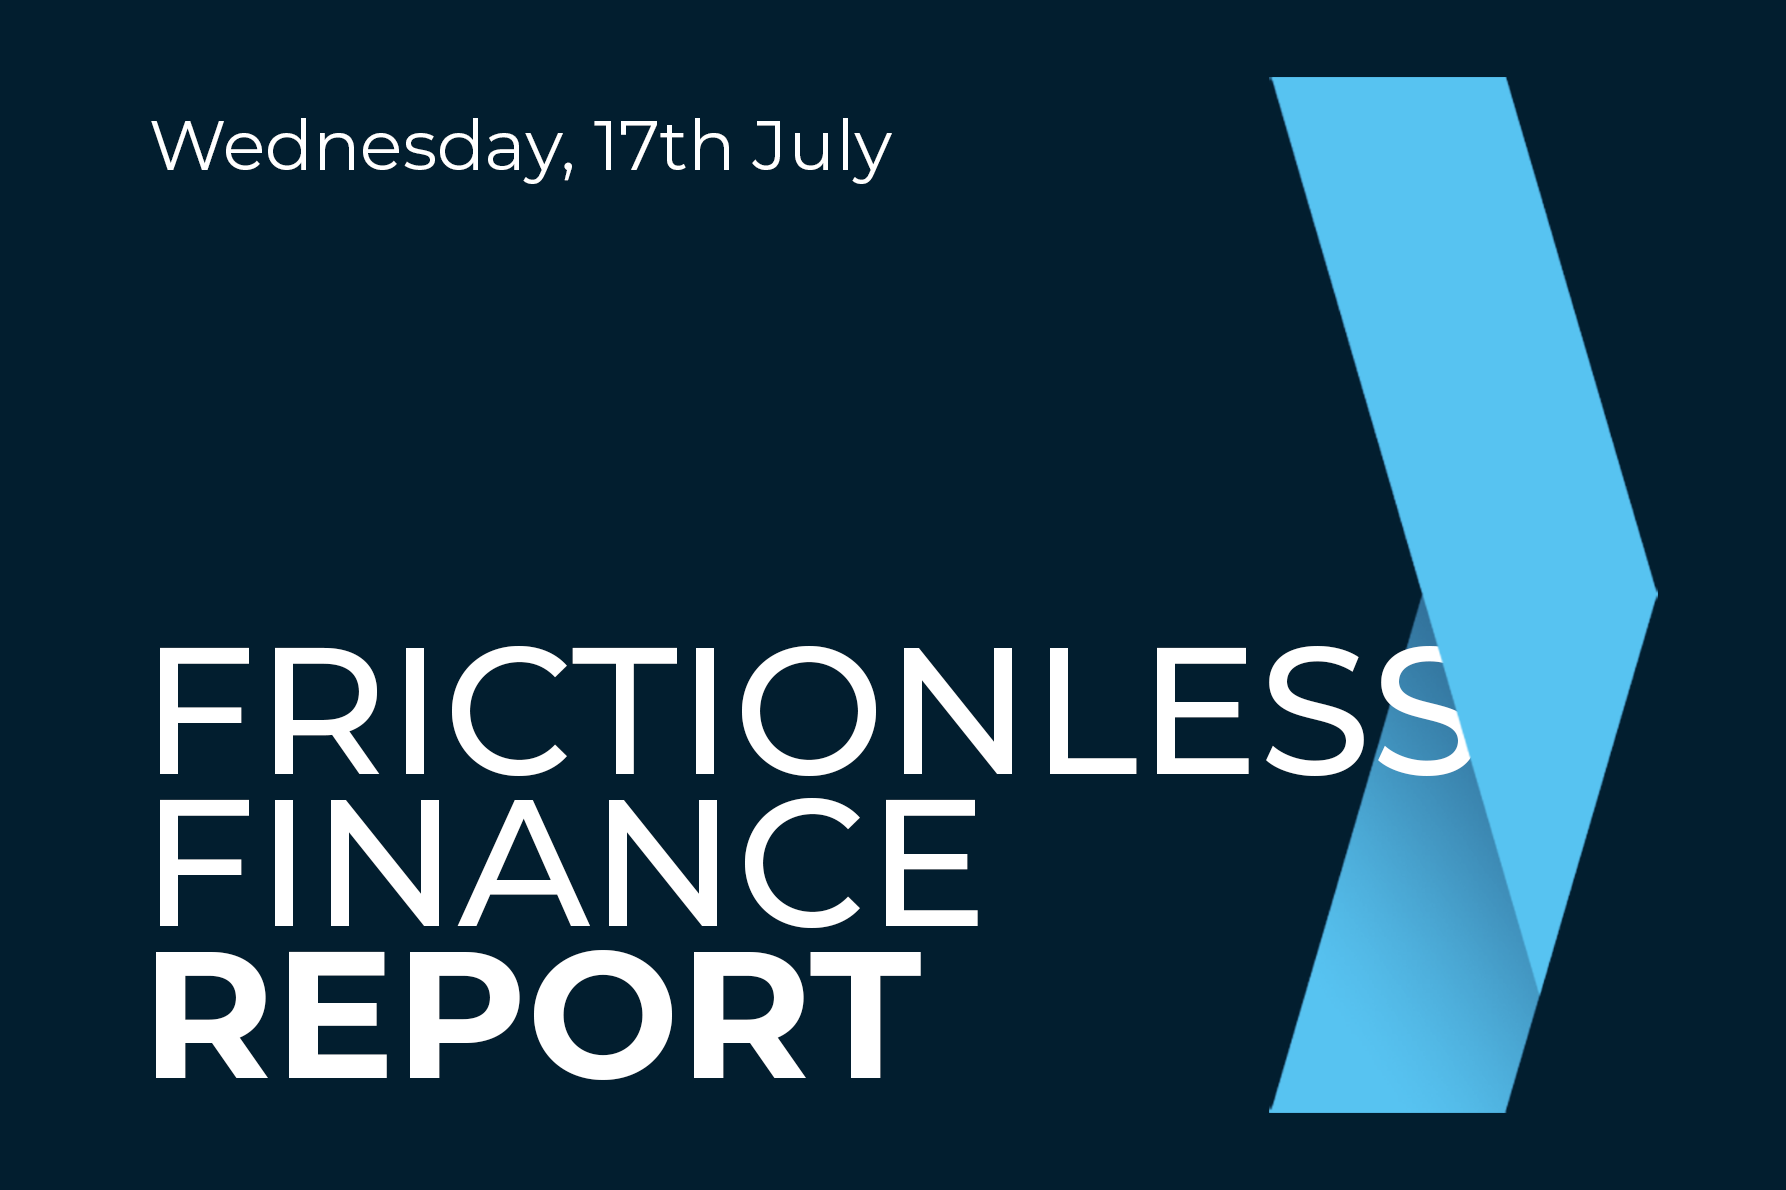 Frictionless Finance Report - Wednesday 17th July